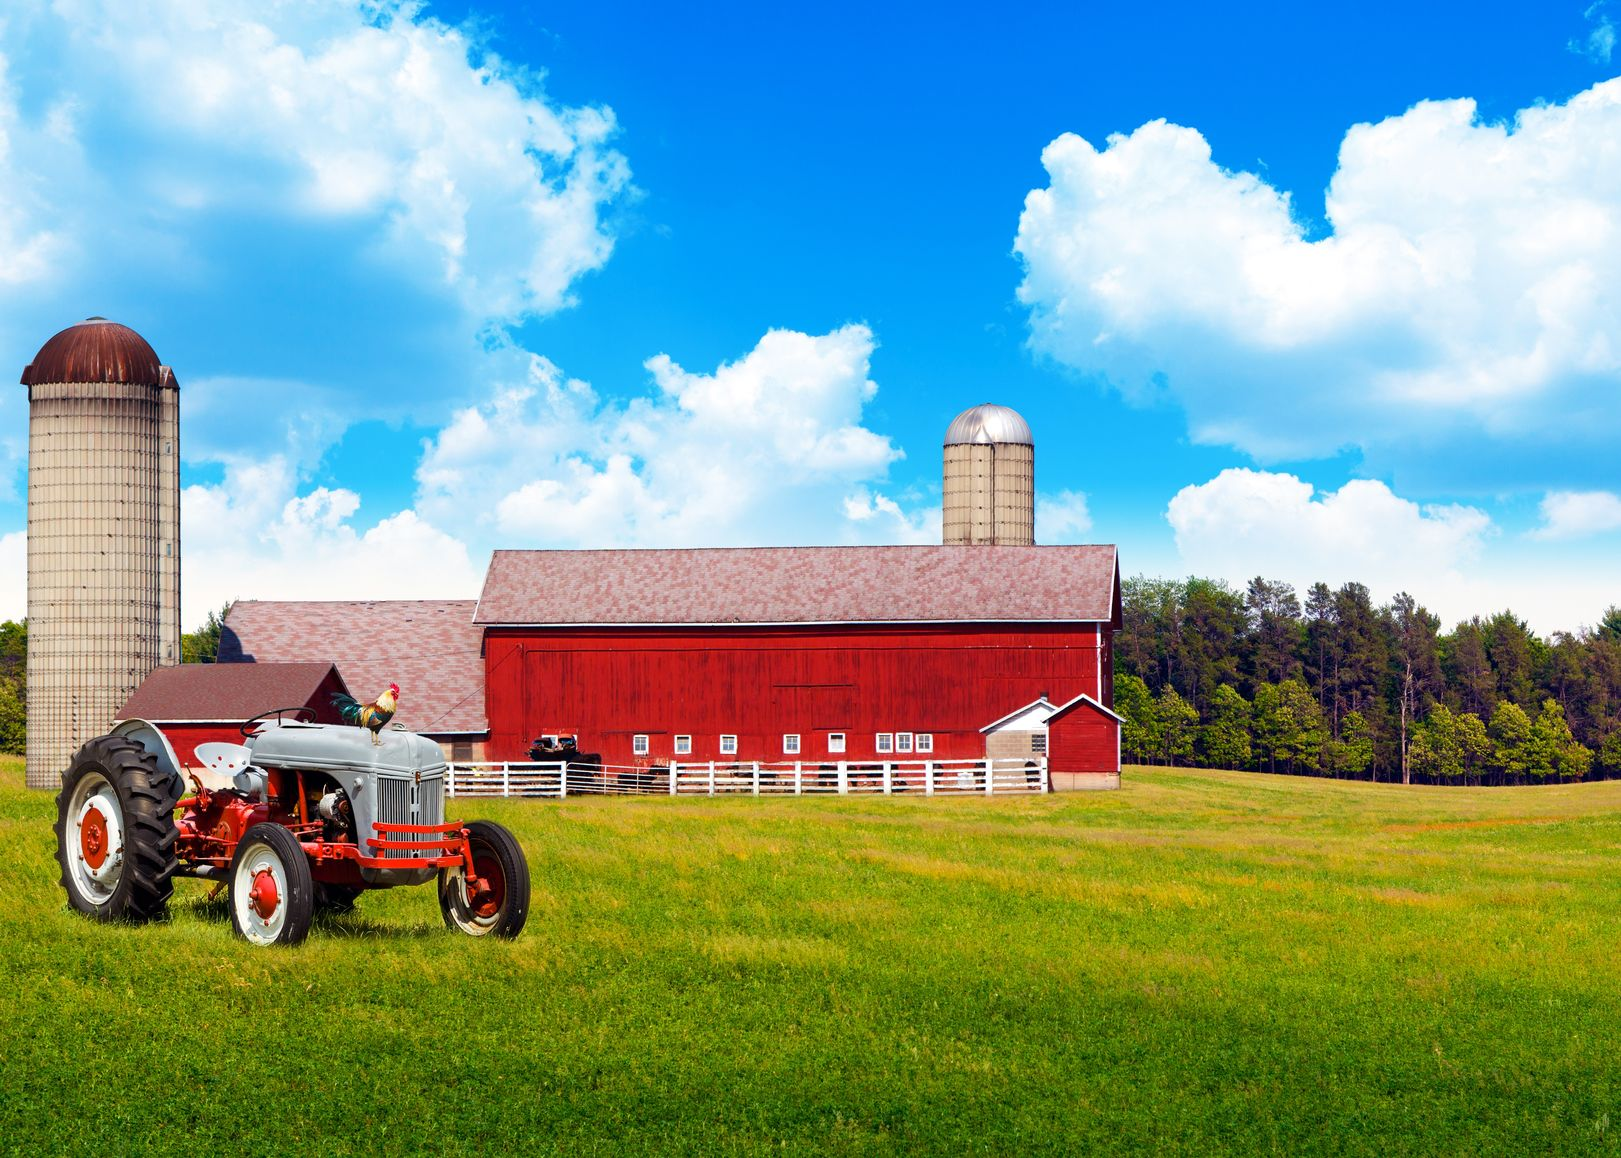 Nashville, TN. Farm & Ranch Insurance